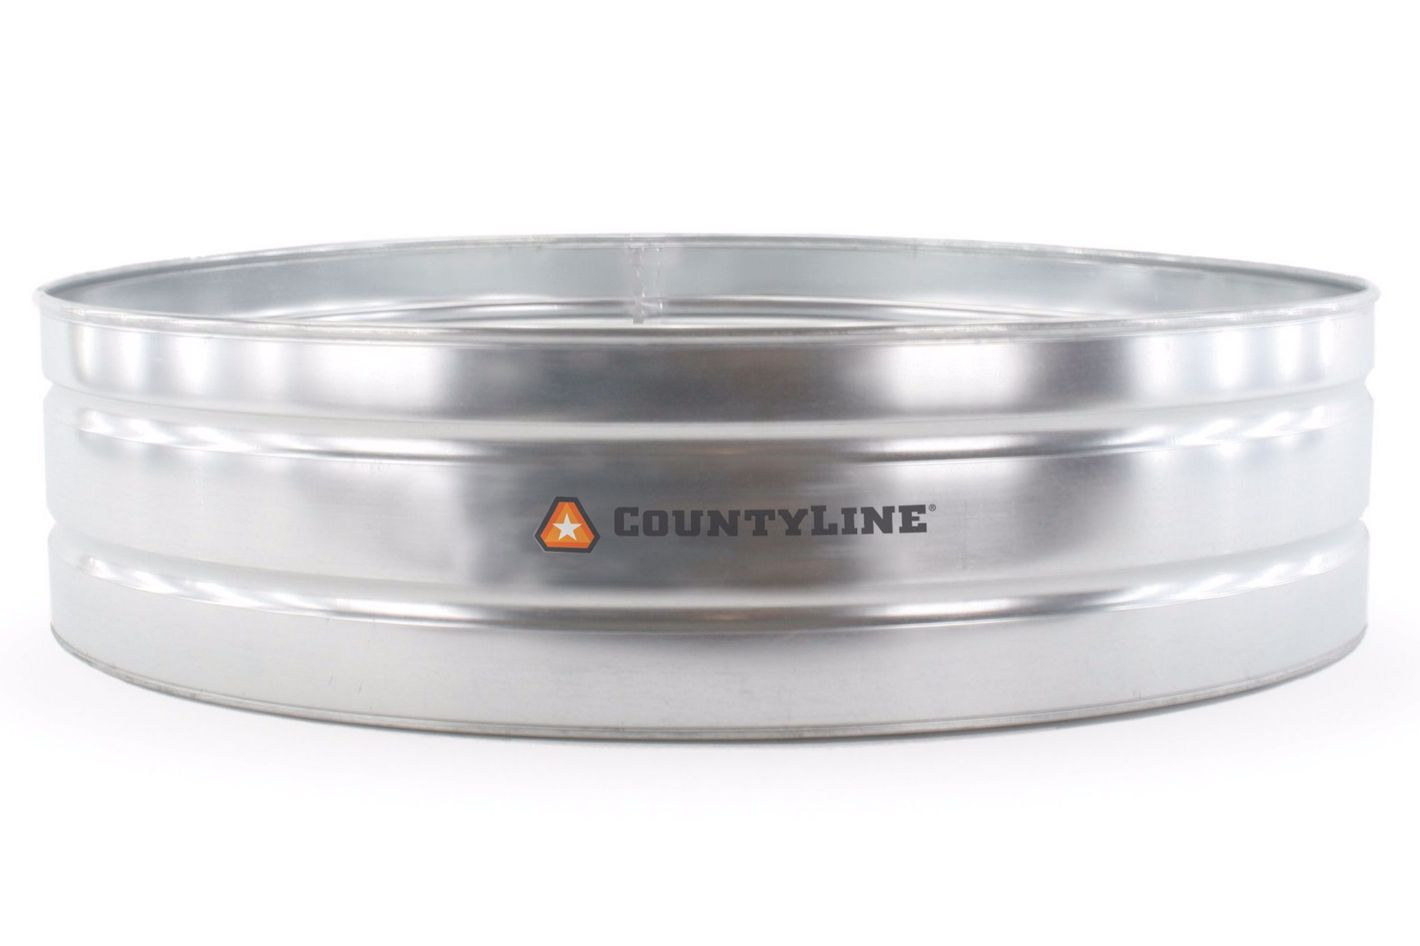 CountyLine Galvanized Round Stock tank, 8 ft. x 2 ft.